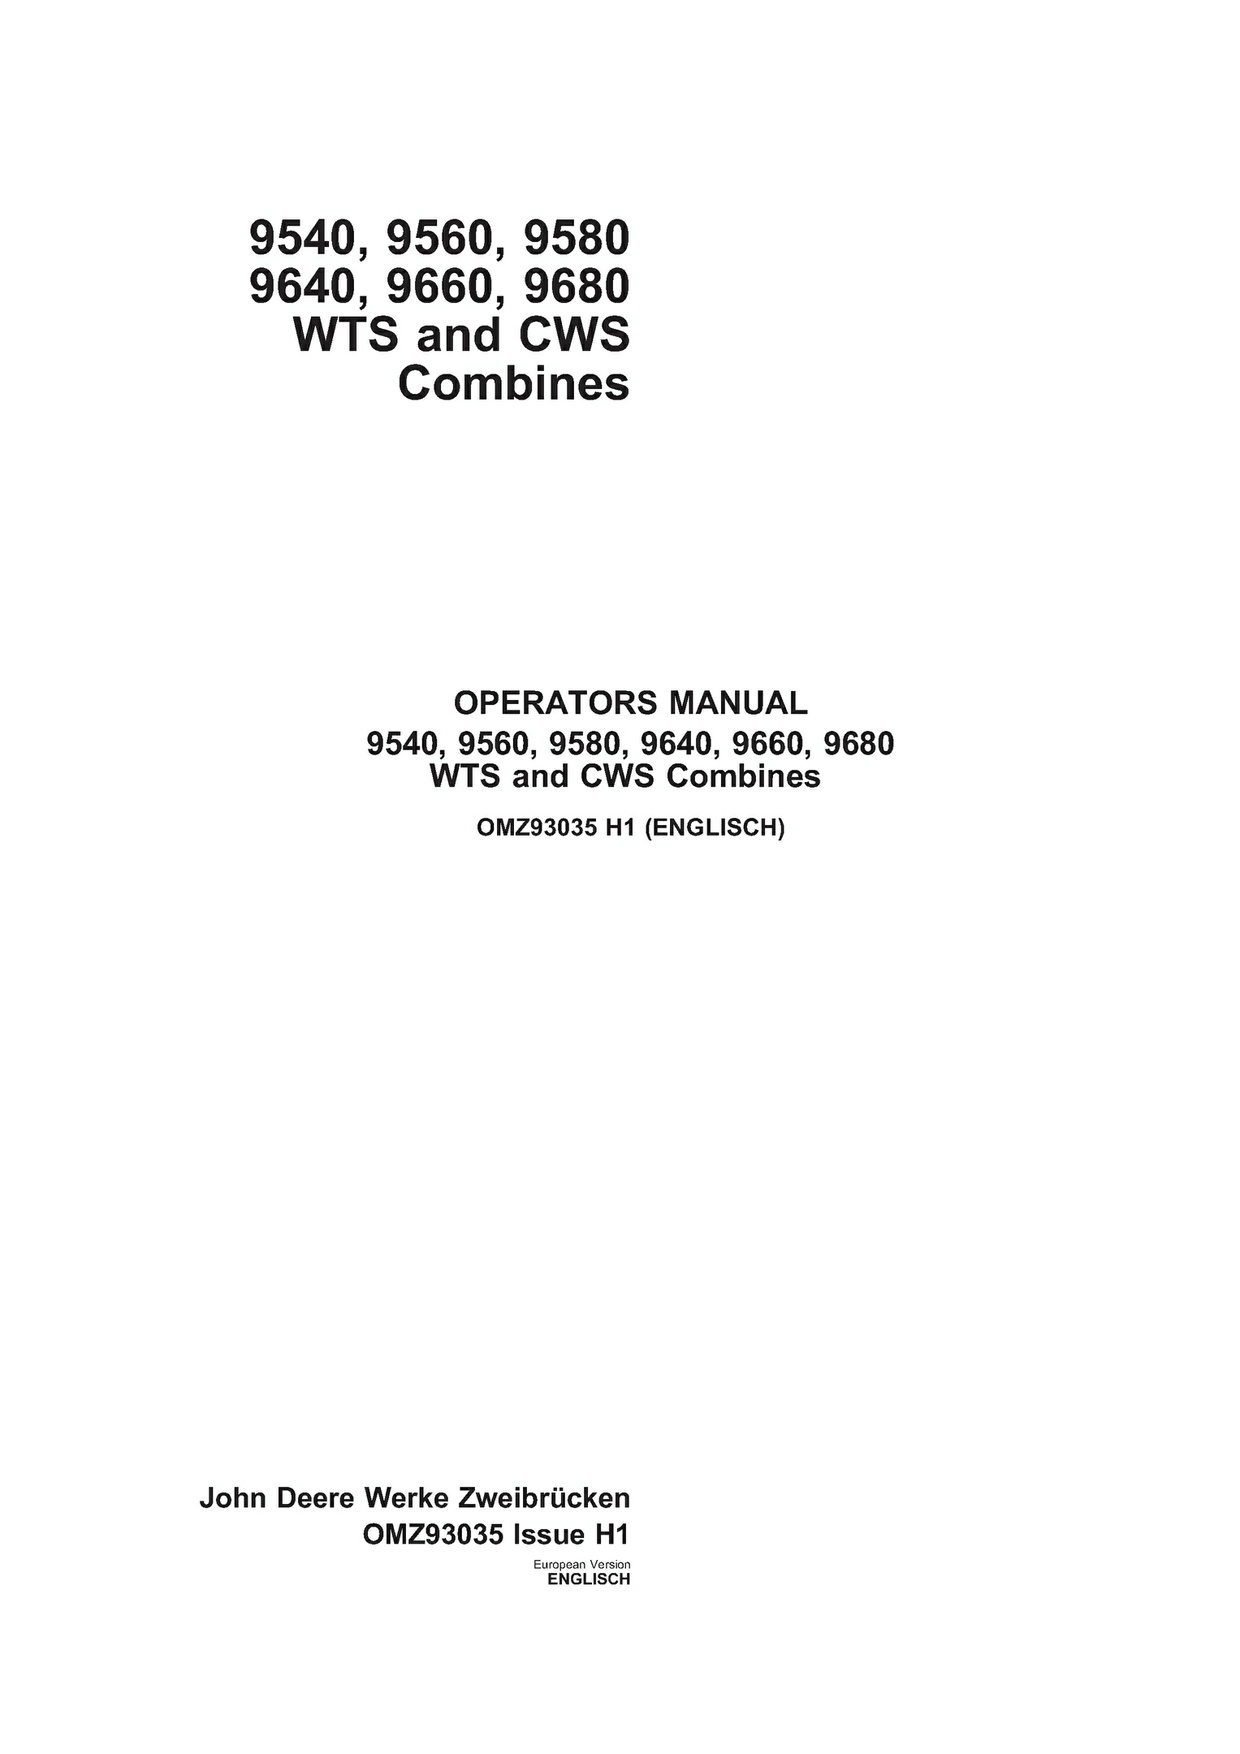 PDF Download John Deere 9540 - 9680 WTS and CWS Combines Operator's Manual OMZ93035